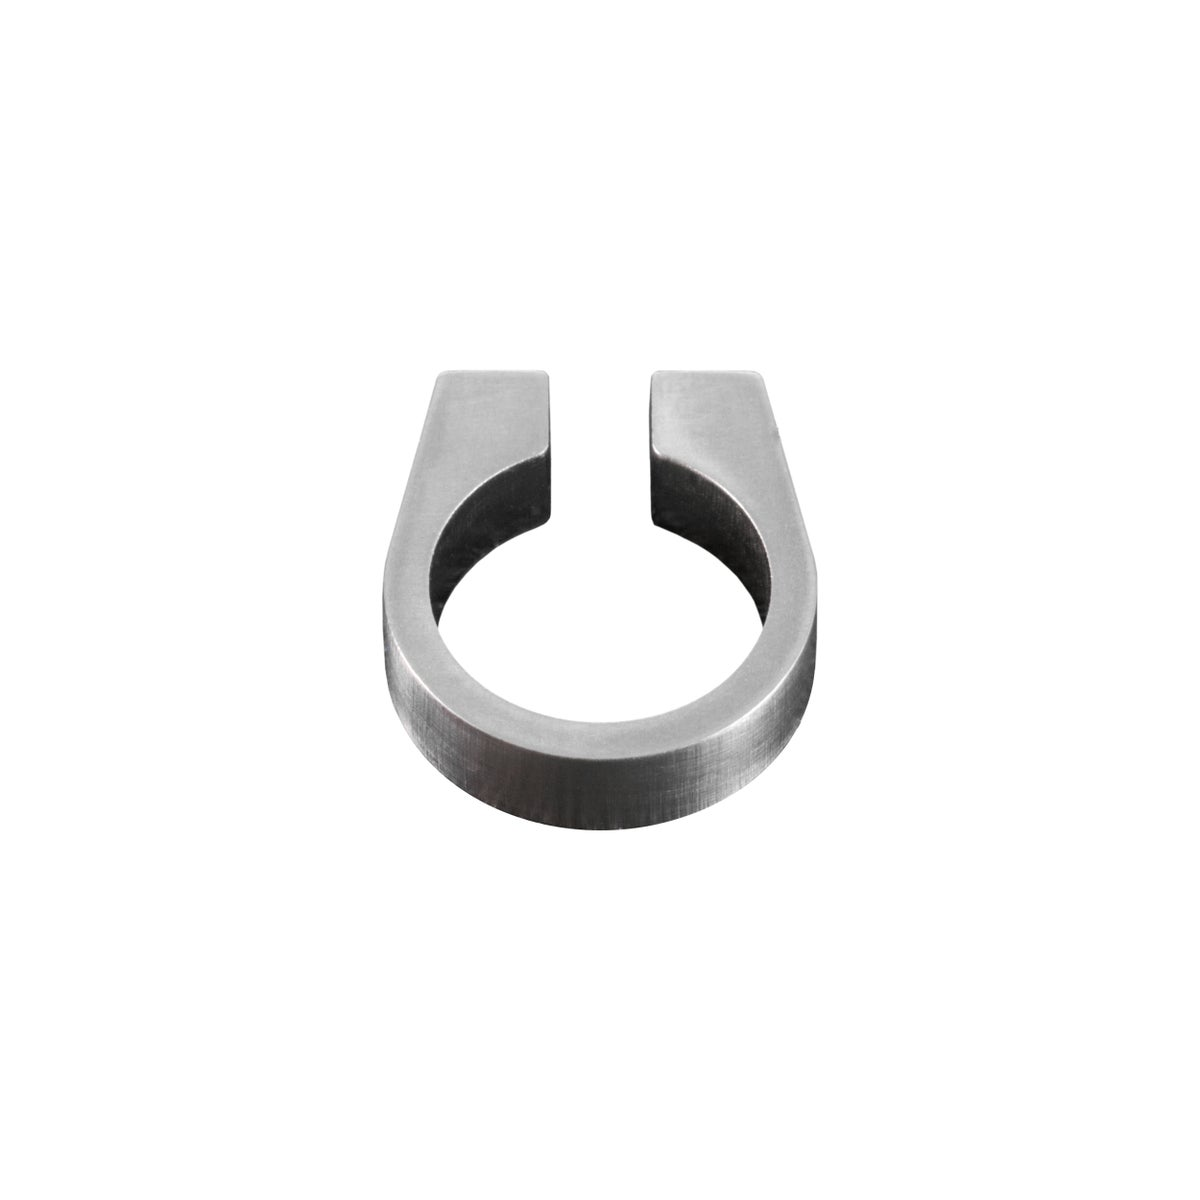 Image of Delta Ring 6mm - Flat Collection